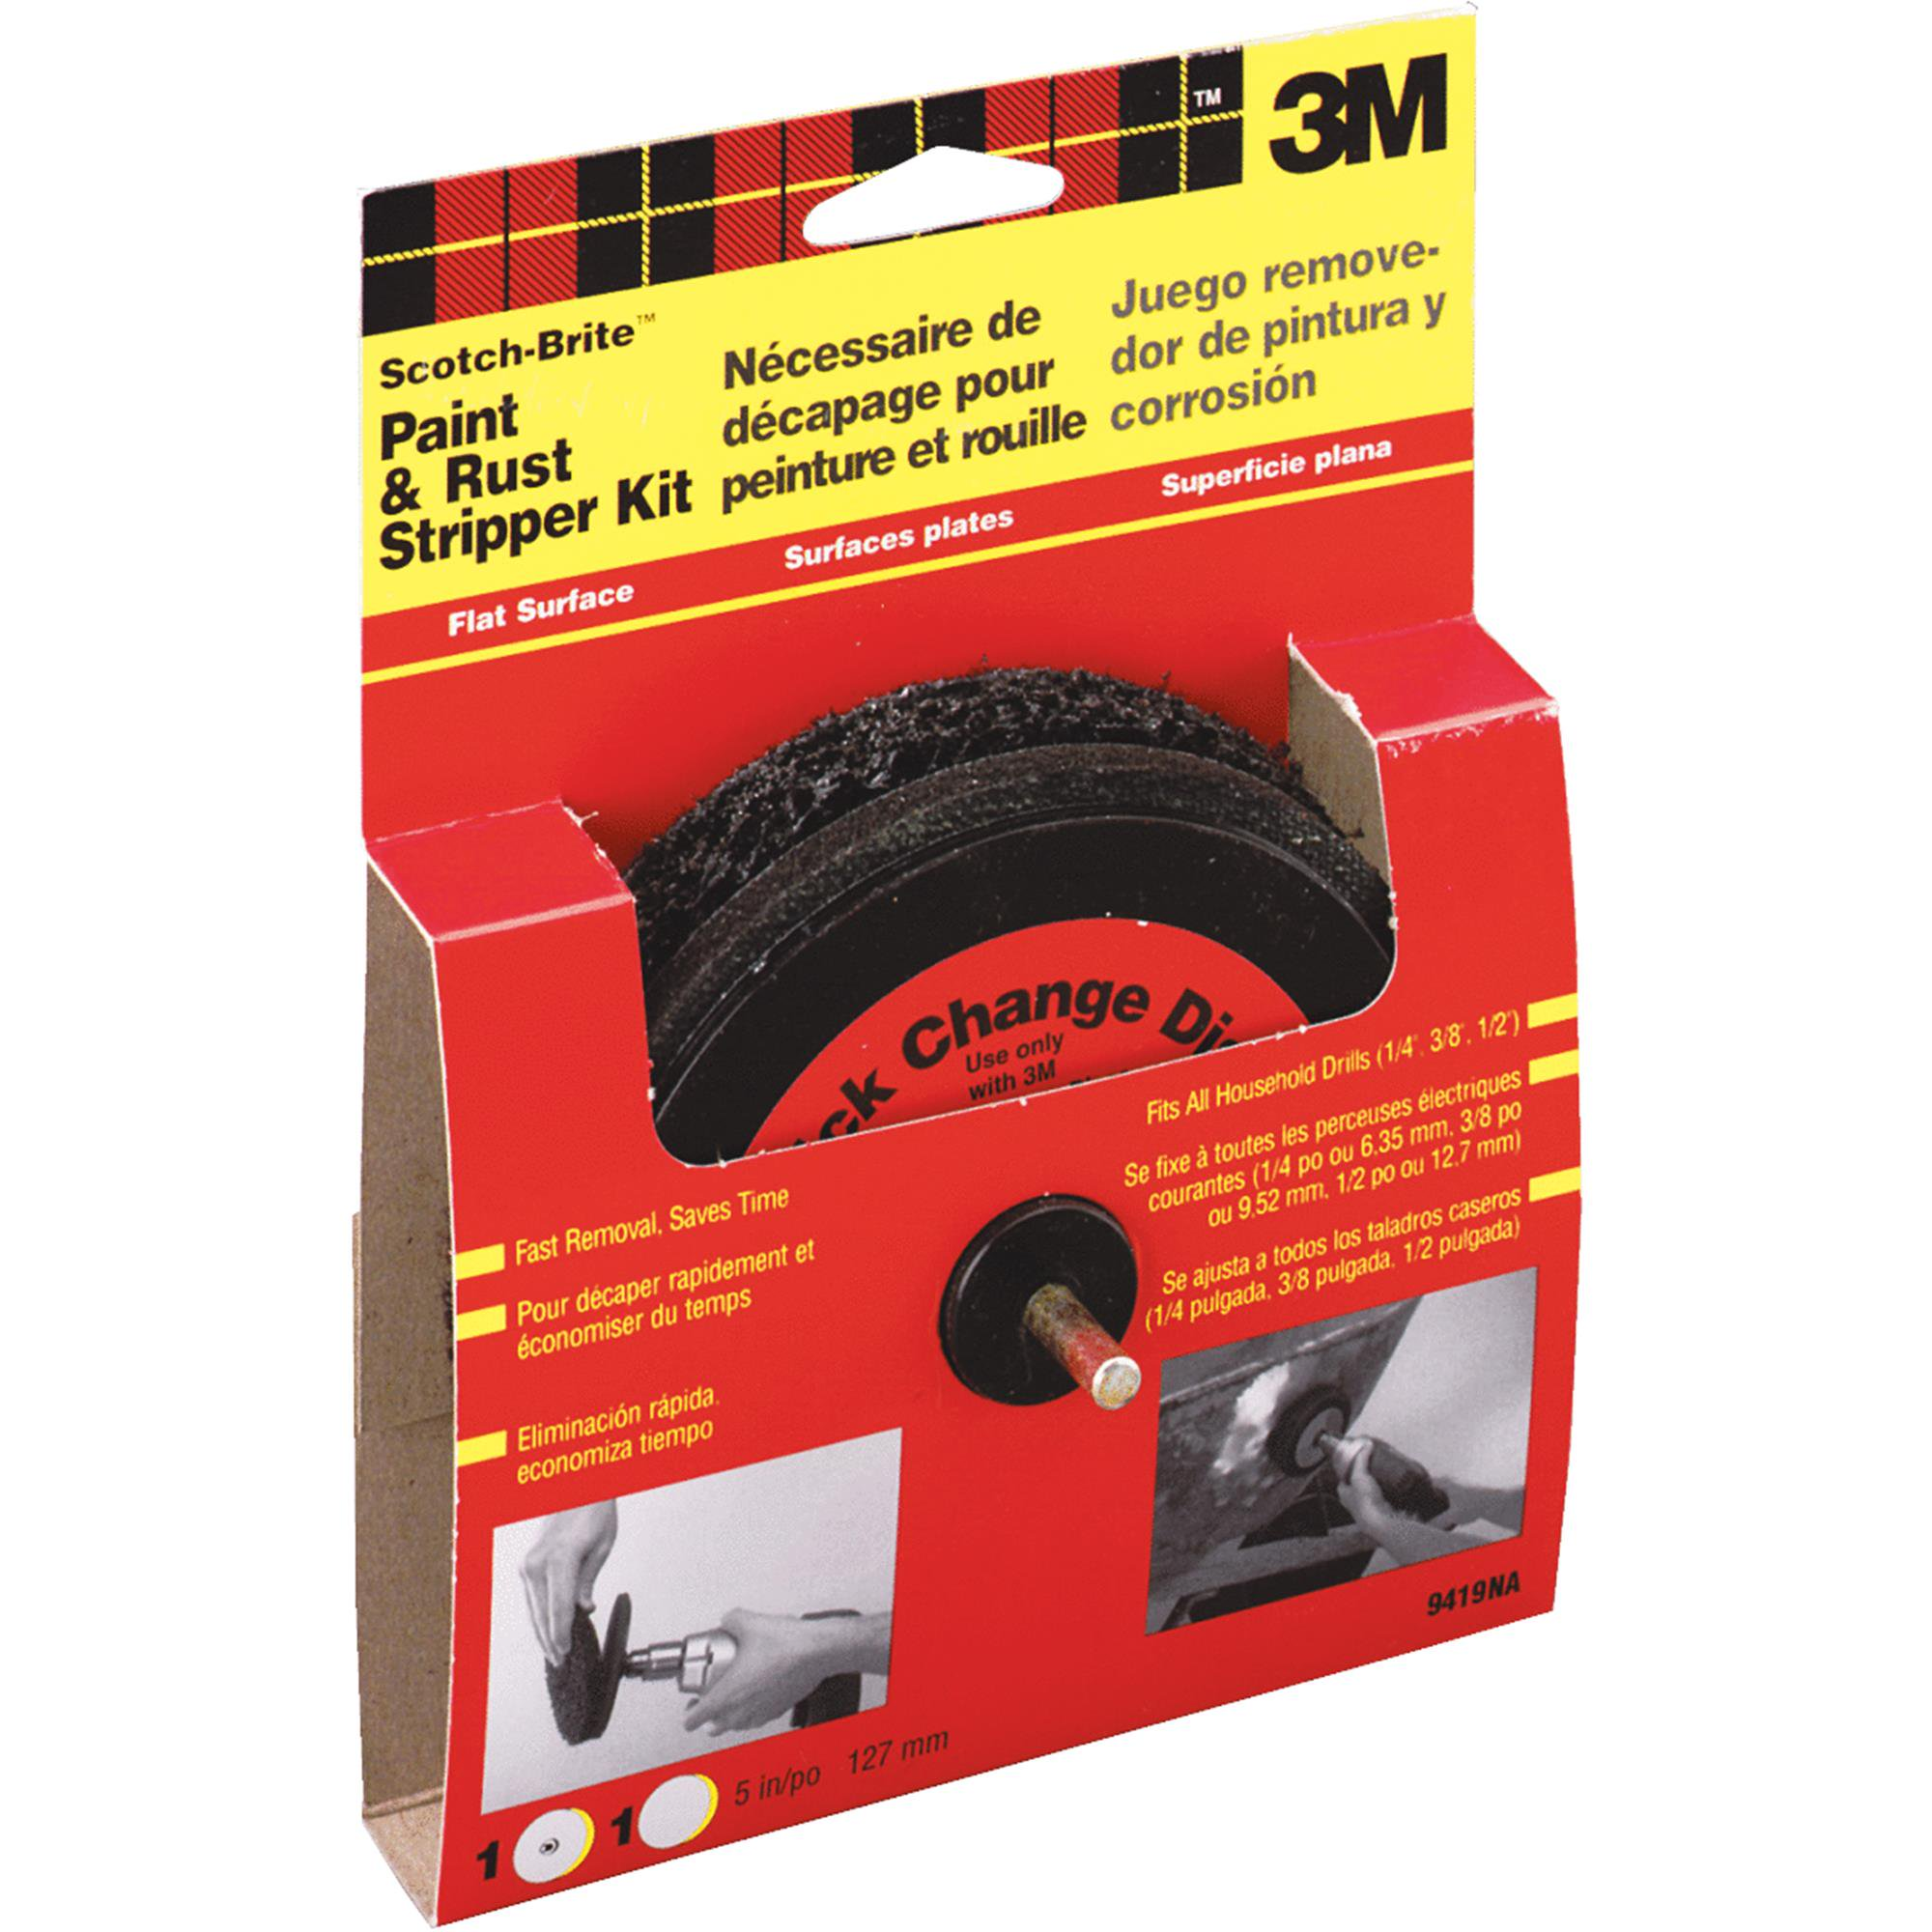 3M 9419NA Scotch-Brite Paint and Rust Stripper Kit Flat Surface by 3M